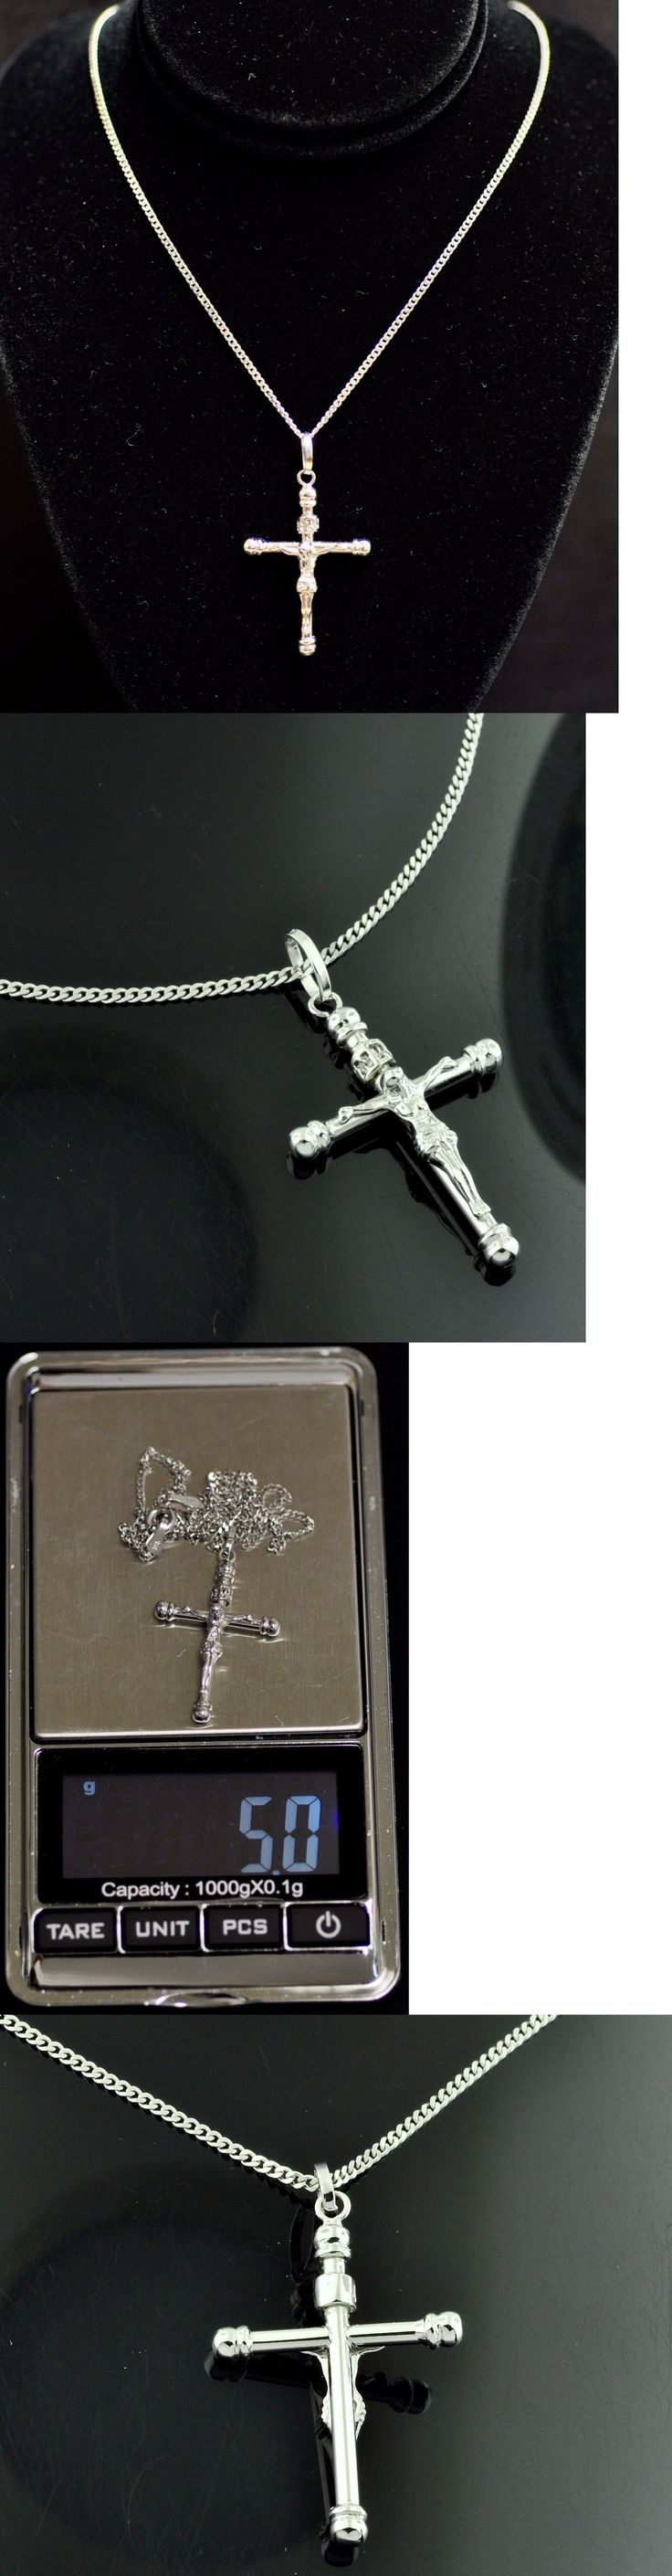 Necklaces and Pendants 84607: 18K Solid White Gold Chain Necklace And Cross Pendant #3920 H3jewels 5.00 Gram -> BUY IT NOW ONLY: $255.0 on eBay!